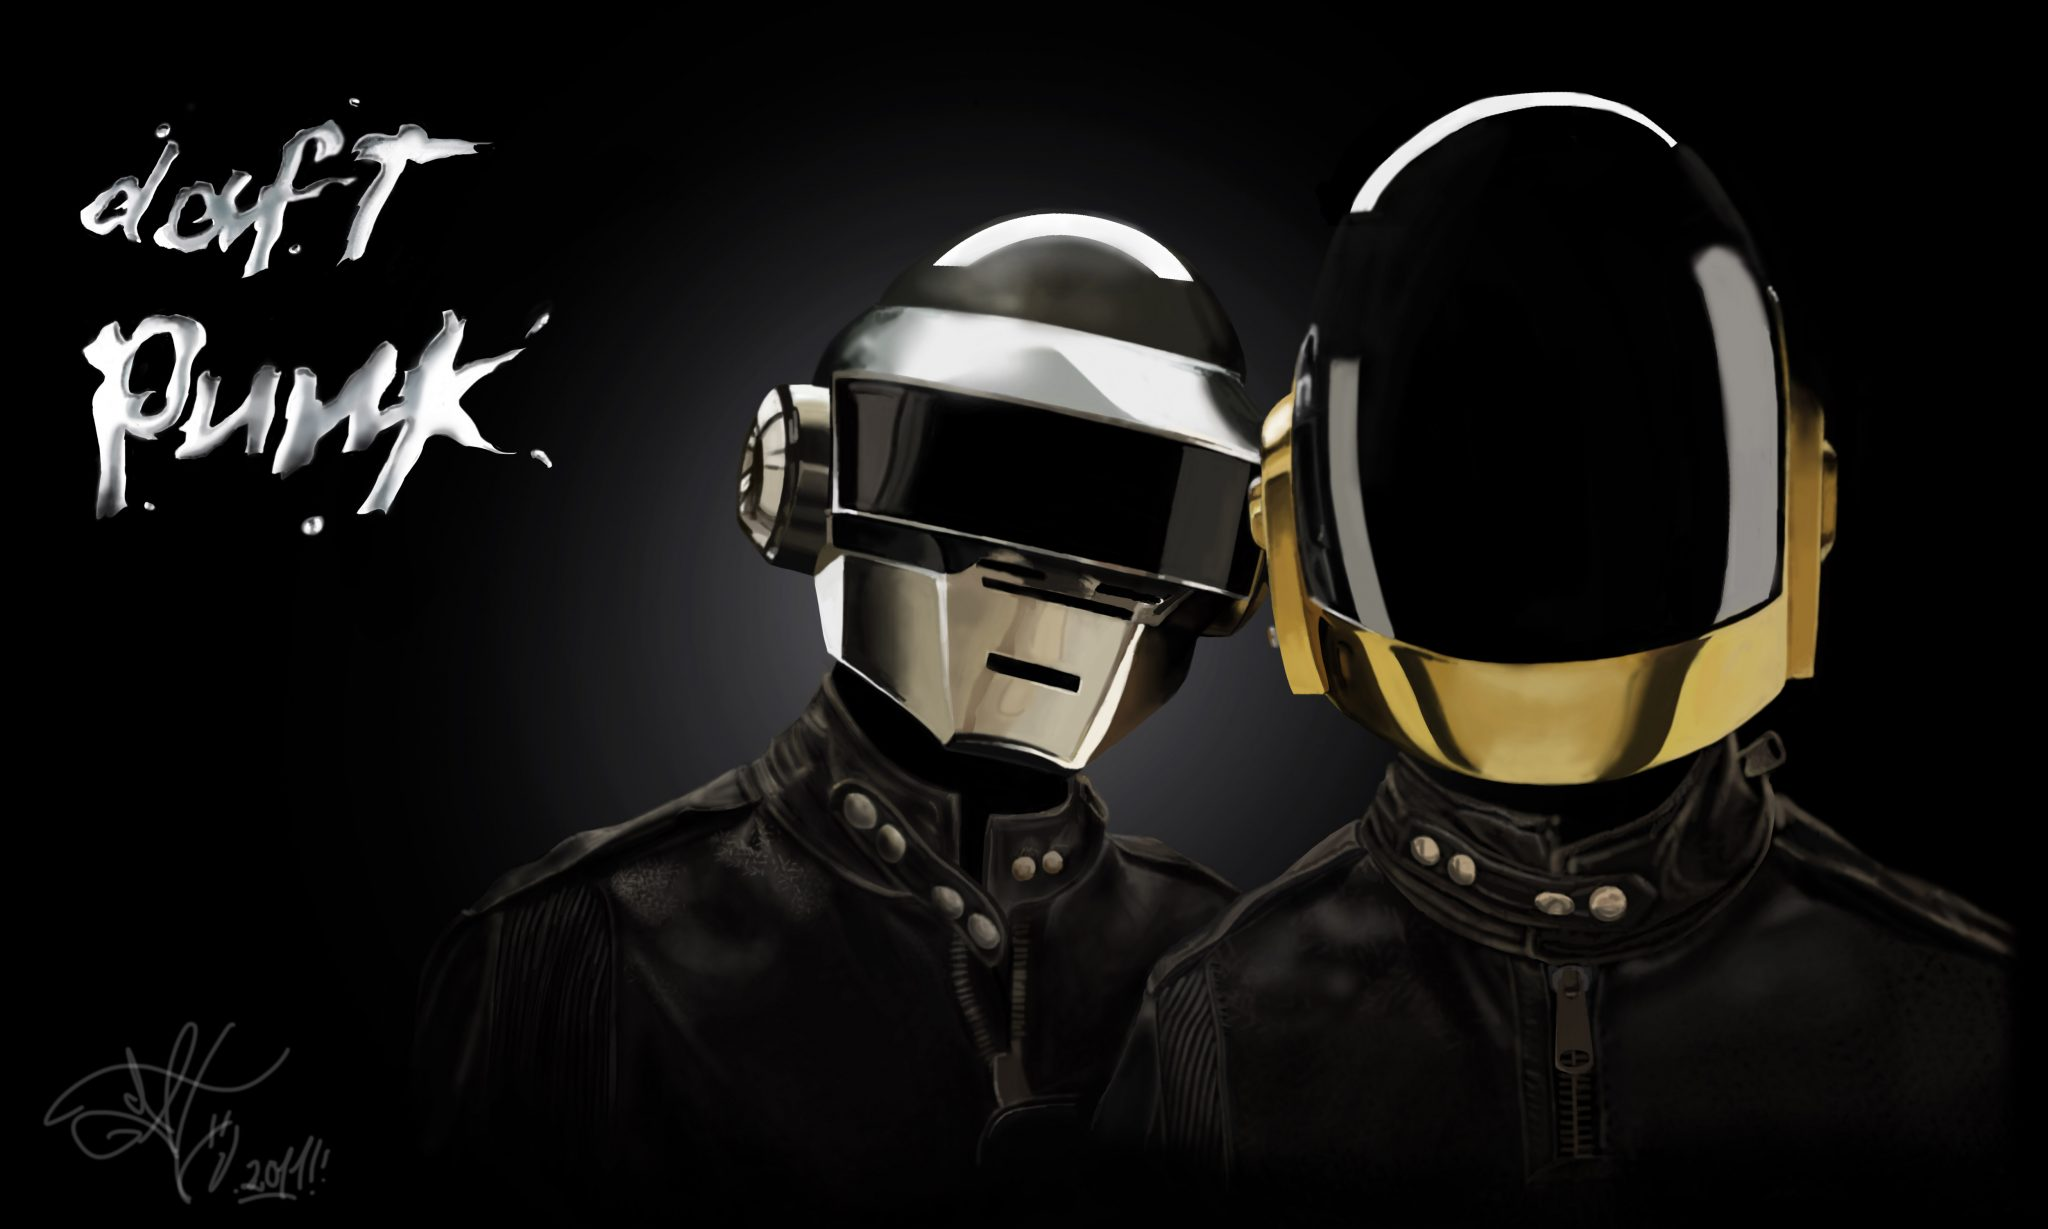 how tall is daft punk